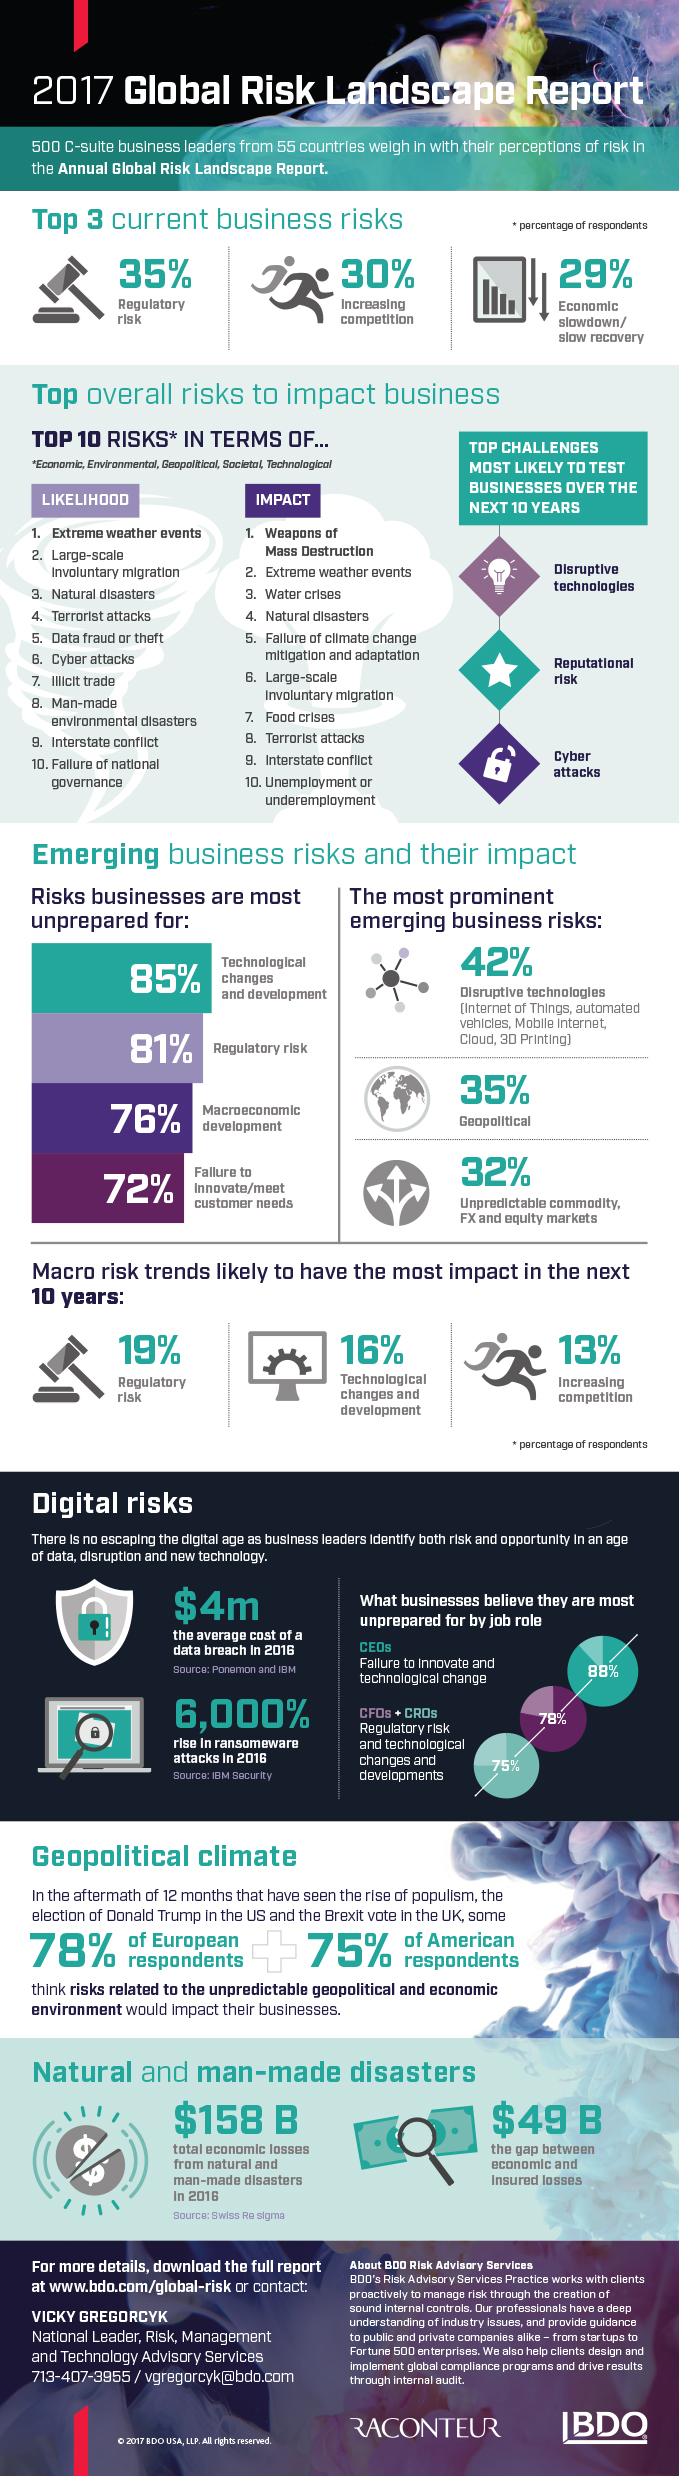 2017 Global Risk Landscape Study infographic (Graphic: Business Wire)